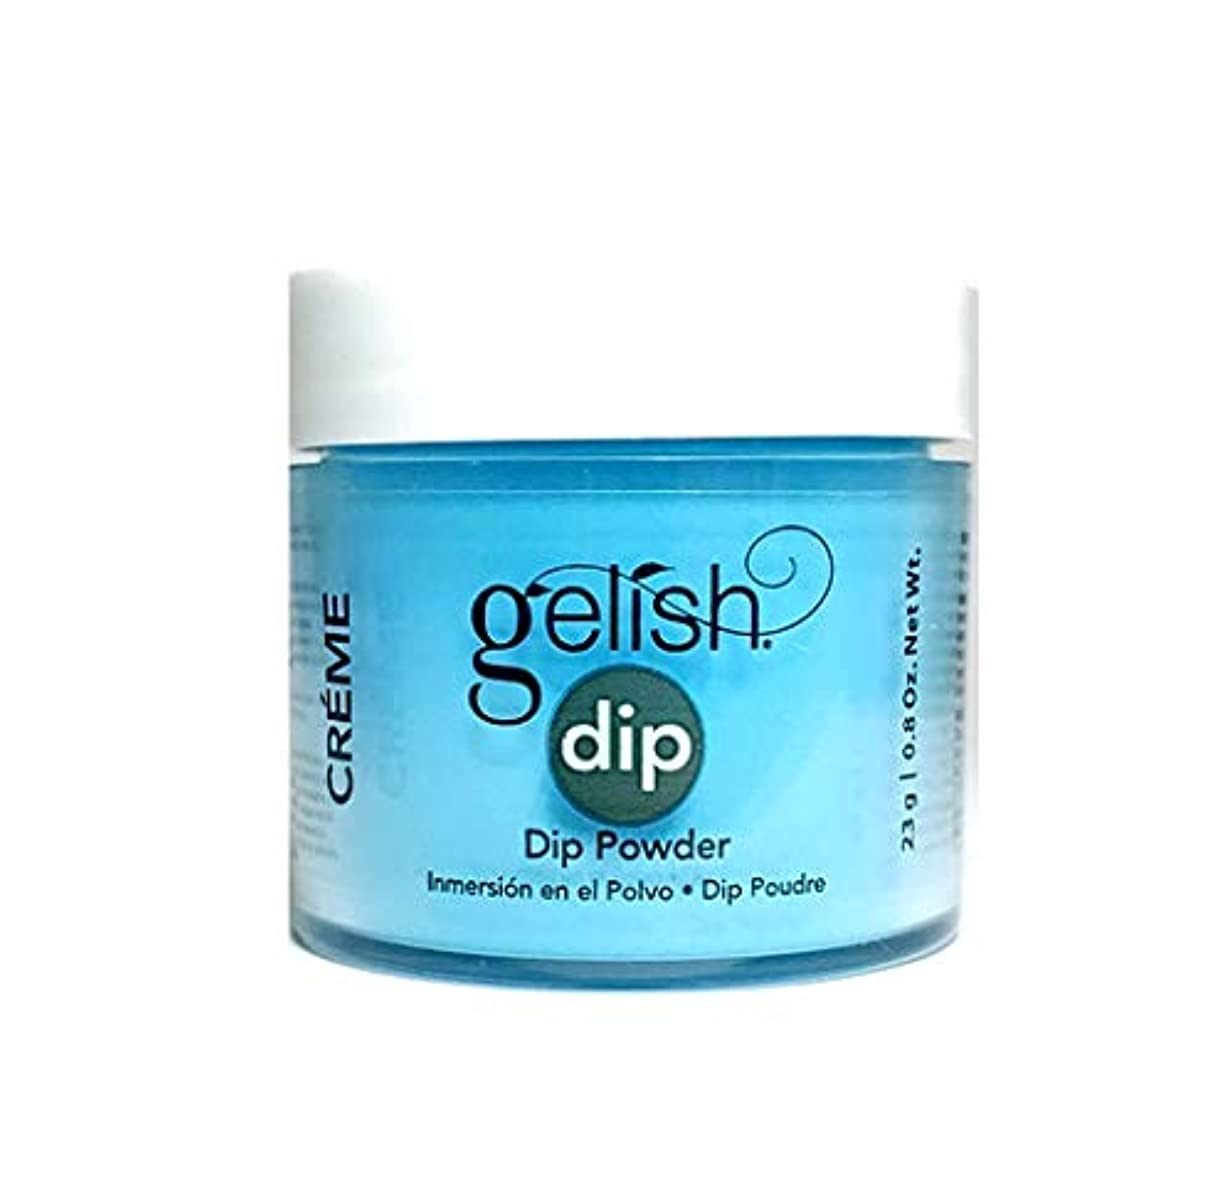 高音羽疼痛Harmony Gelish - Dip Powder - No Filter Needed - 23g / 0.8oz